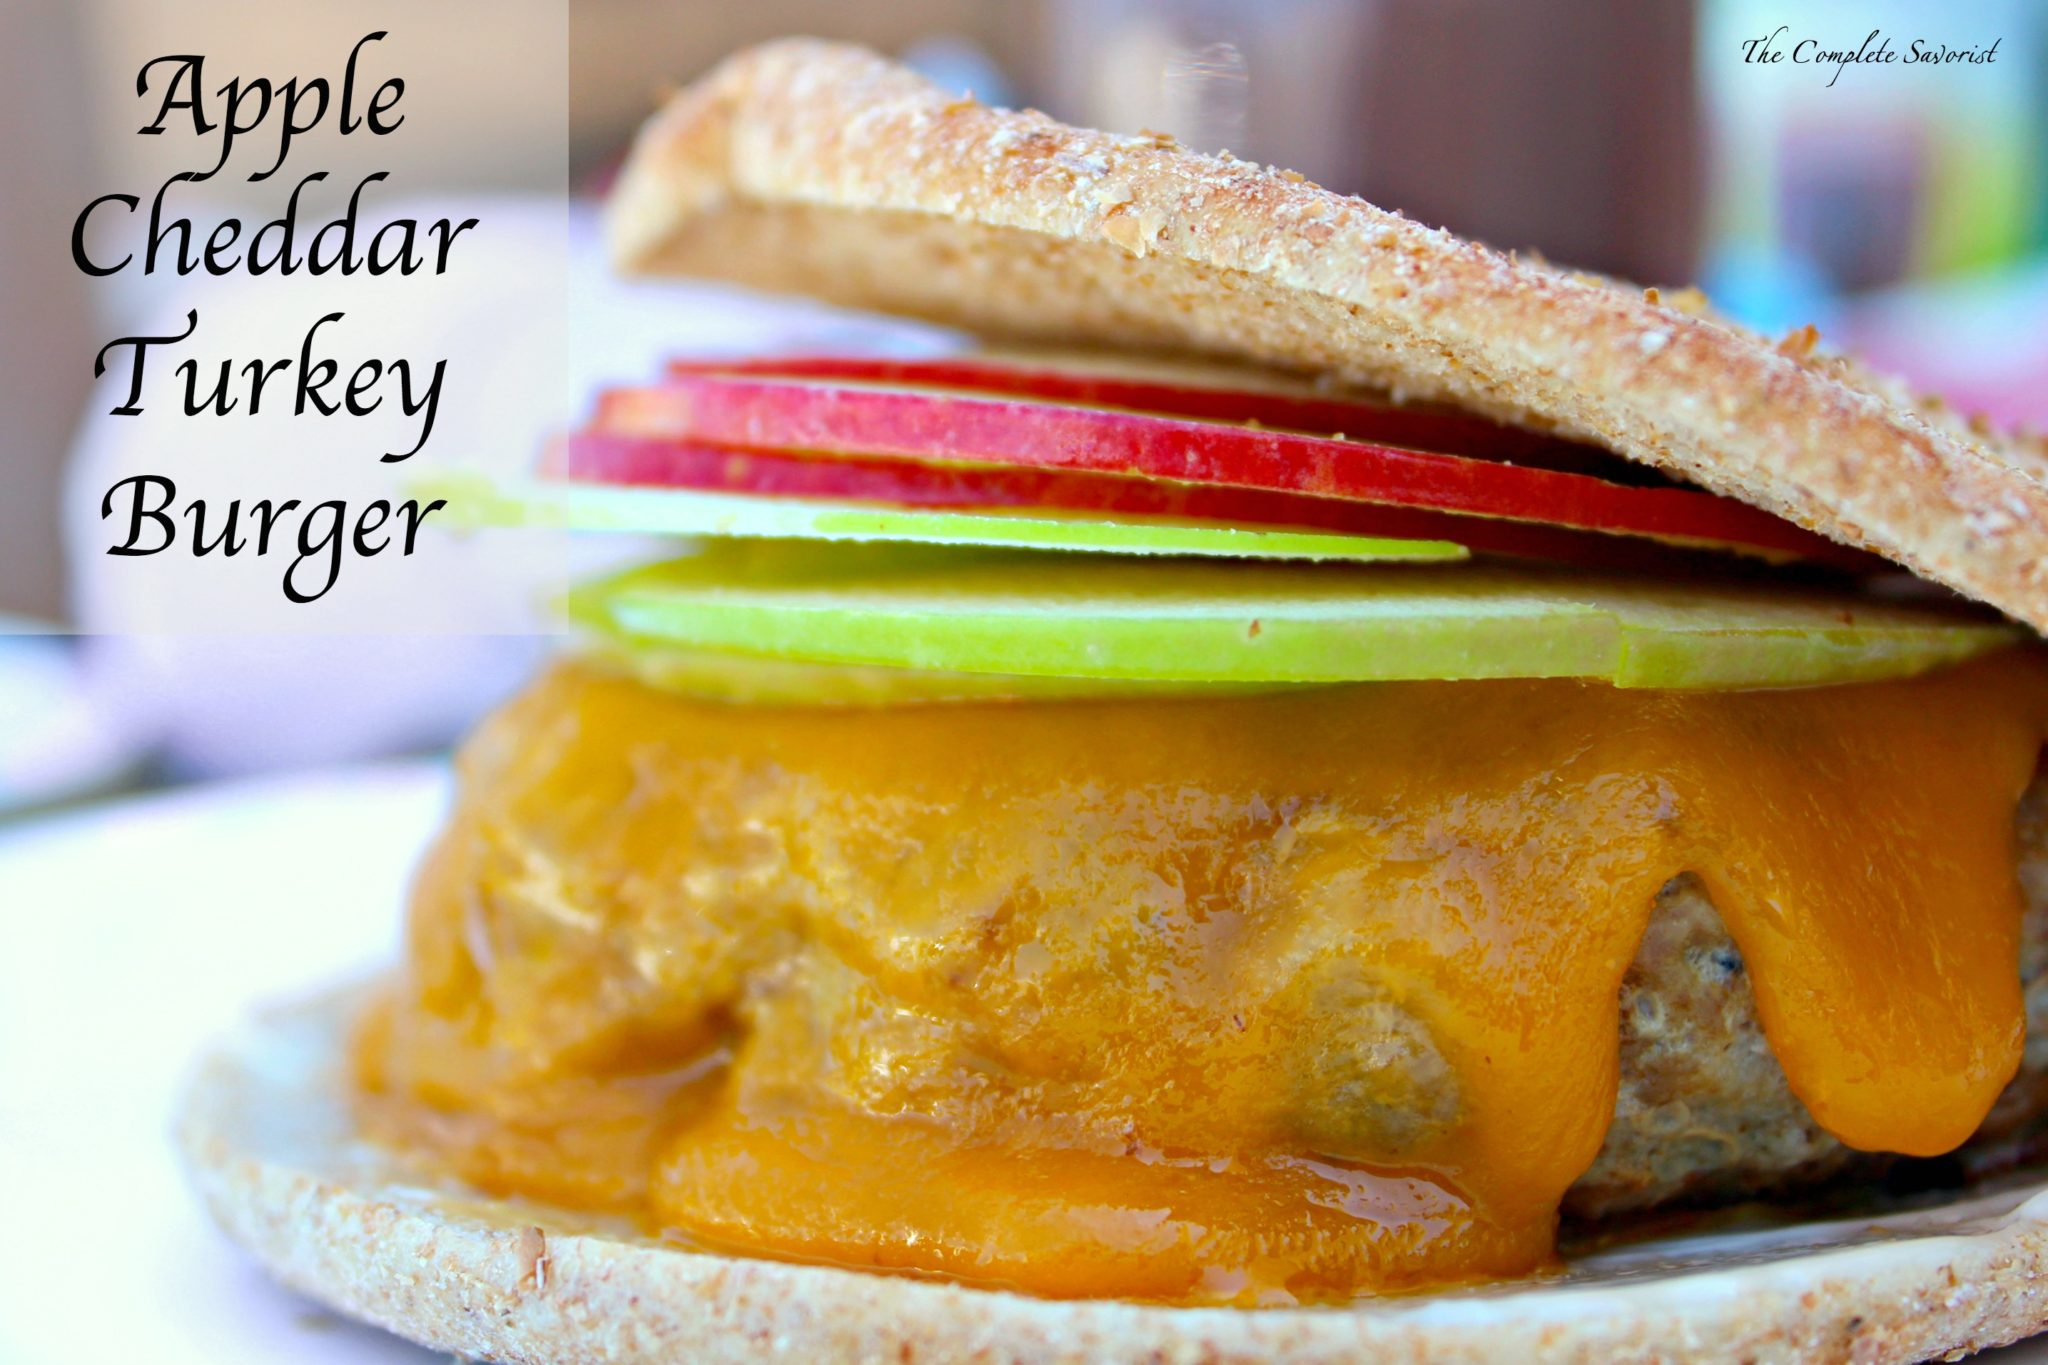 Apple Cheddar Turkey Burgers ~ Deliciously sage-seasoned ground turkey slathered in melted cheddar cheese, topped with both gala and granny Smith apples on a super thin bun ~ The Complete Savorist #GlucernaHungerSmart ad